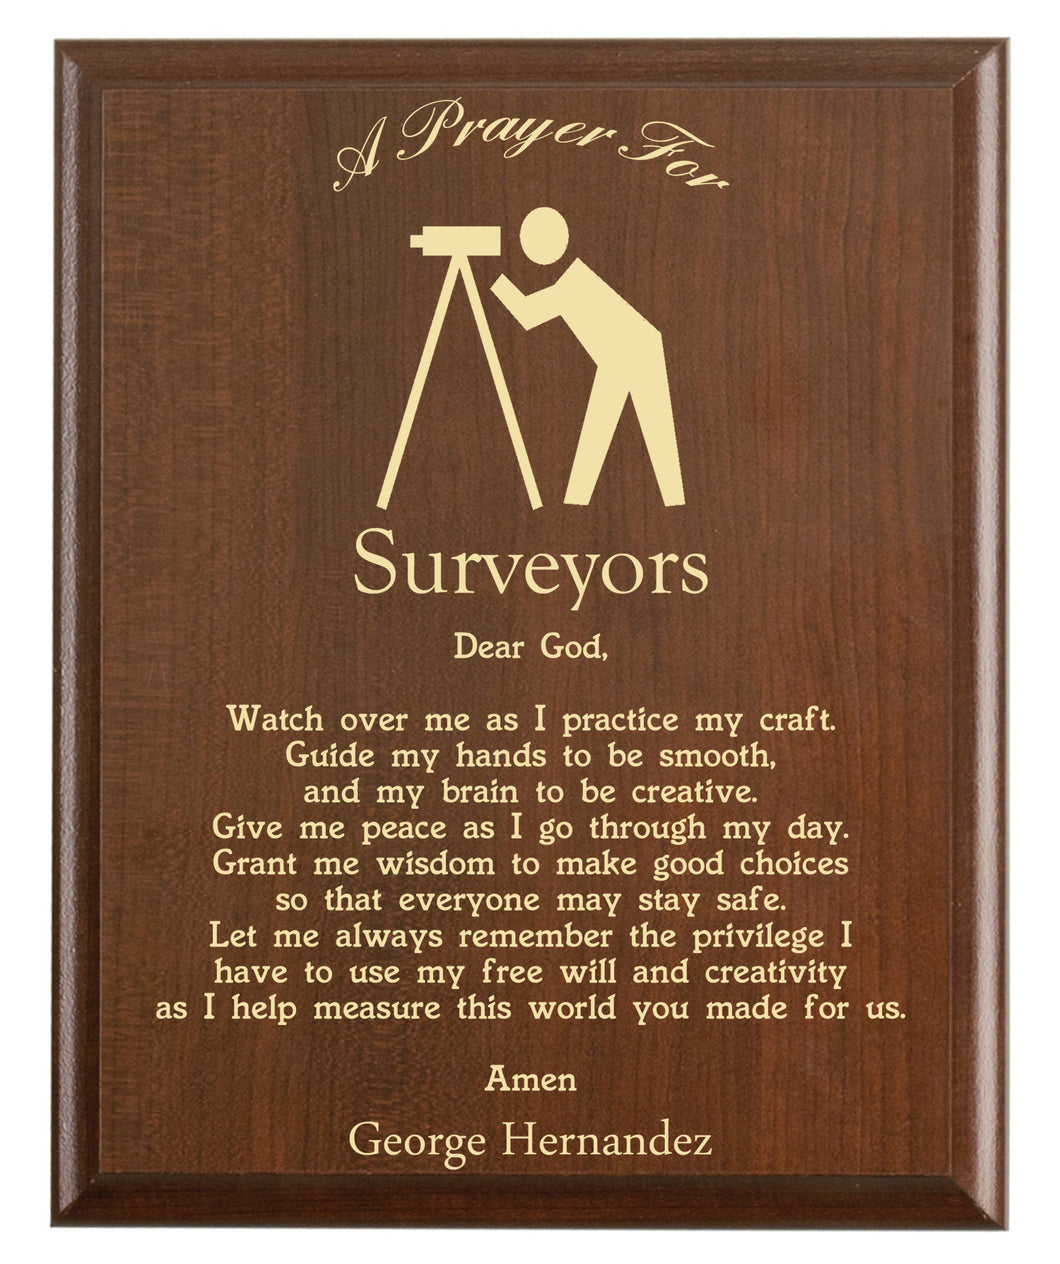 Christian prayer for a surveyor with industry logo and free personalization. Cherry finish with laser engraved text.